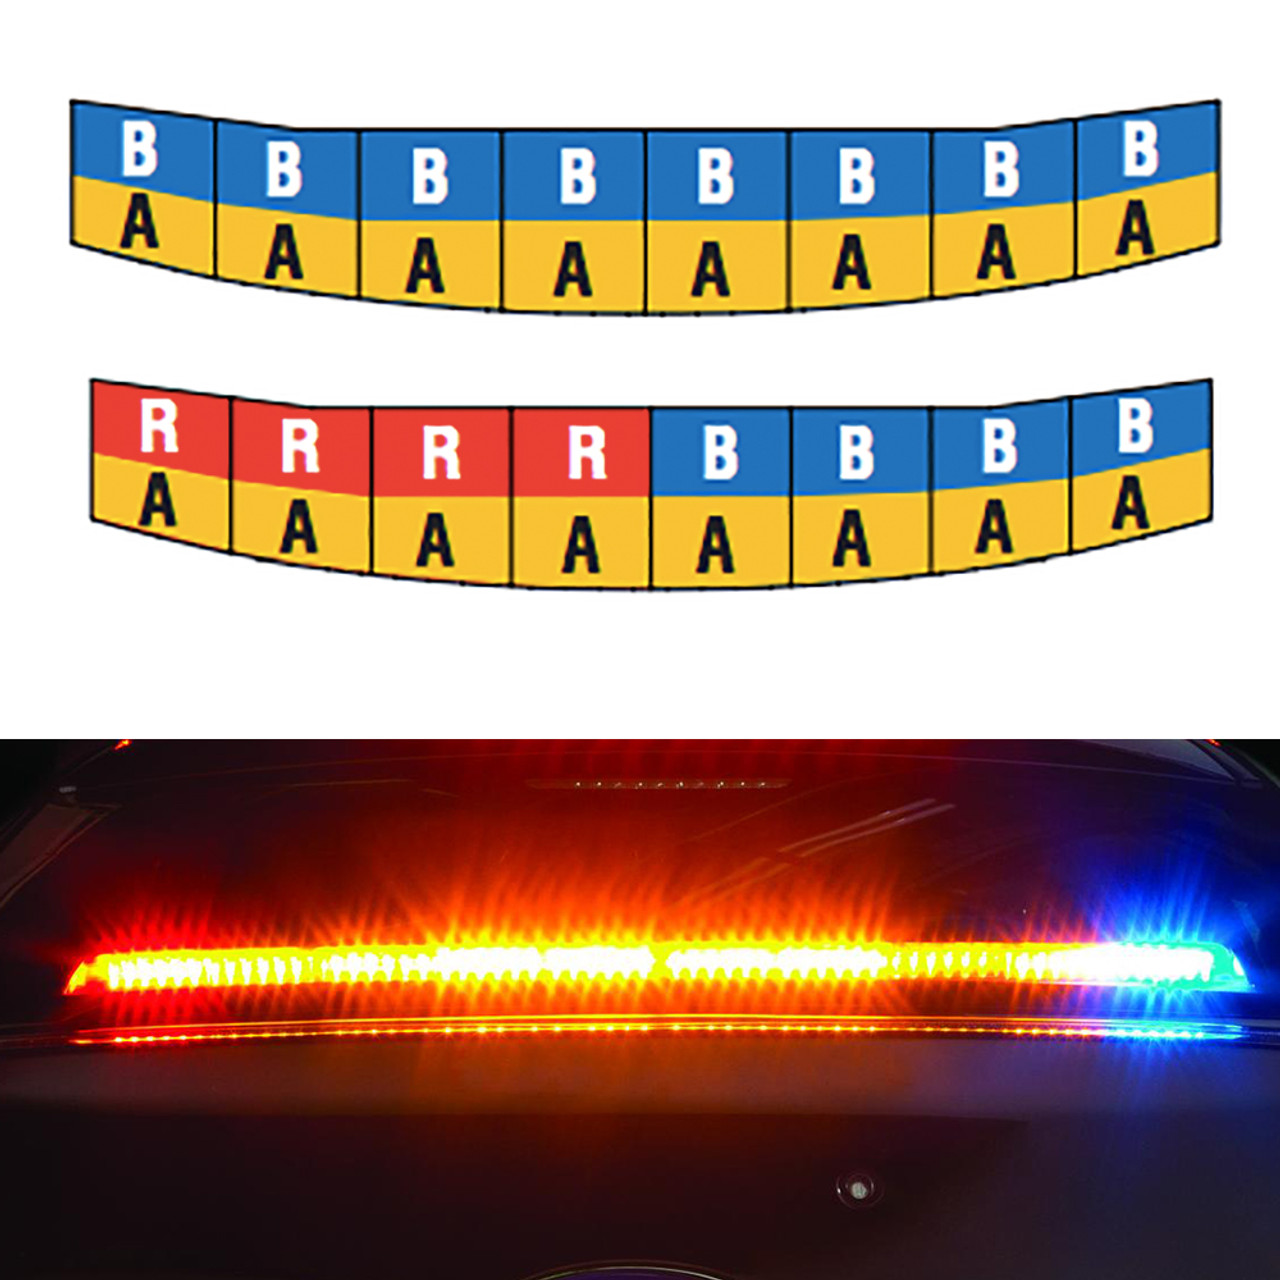 Federal Signal Dodge Charger SIFMR Lower Windshield Rear Facing Interior Lightbar, Spectralux ILS, Dual Color per head, available in Red, Blue, and Red/Blue with Amber Traffic Advisor